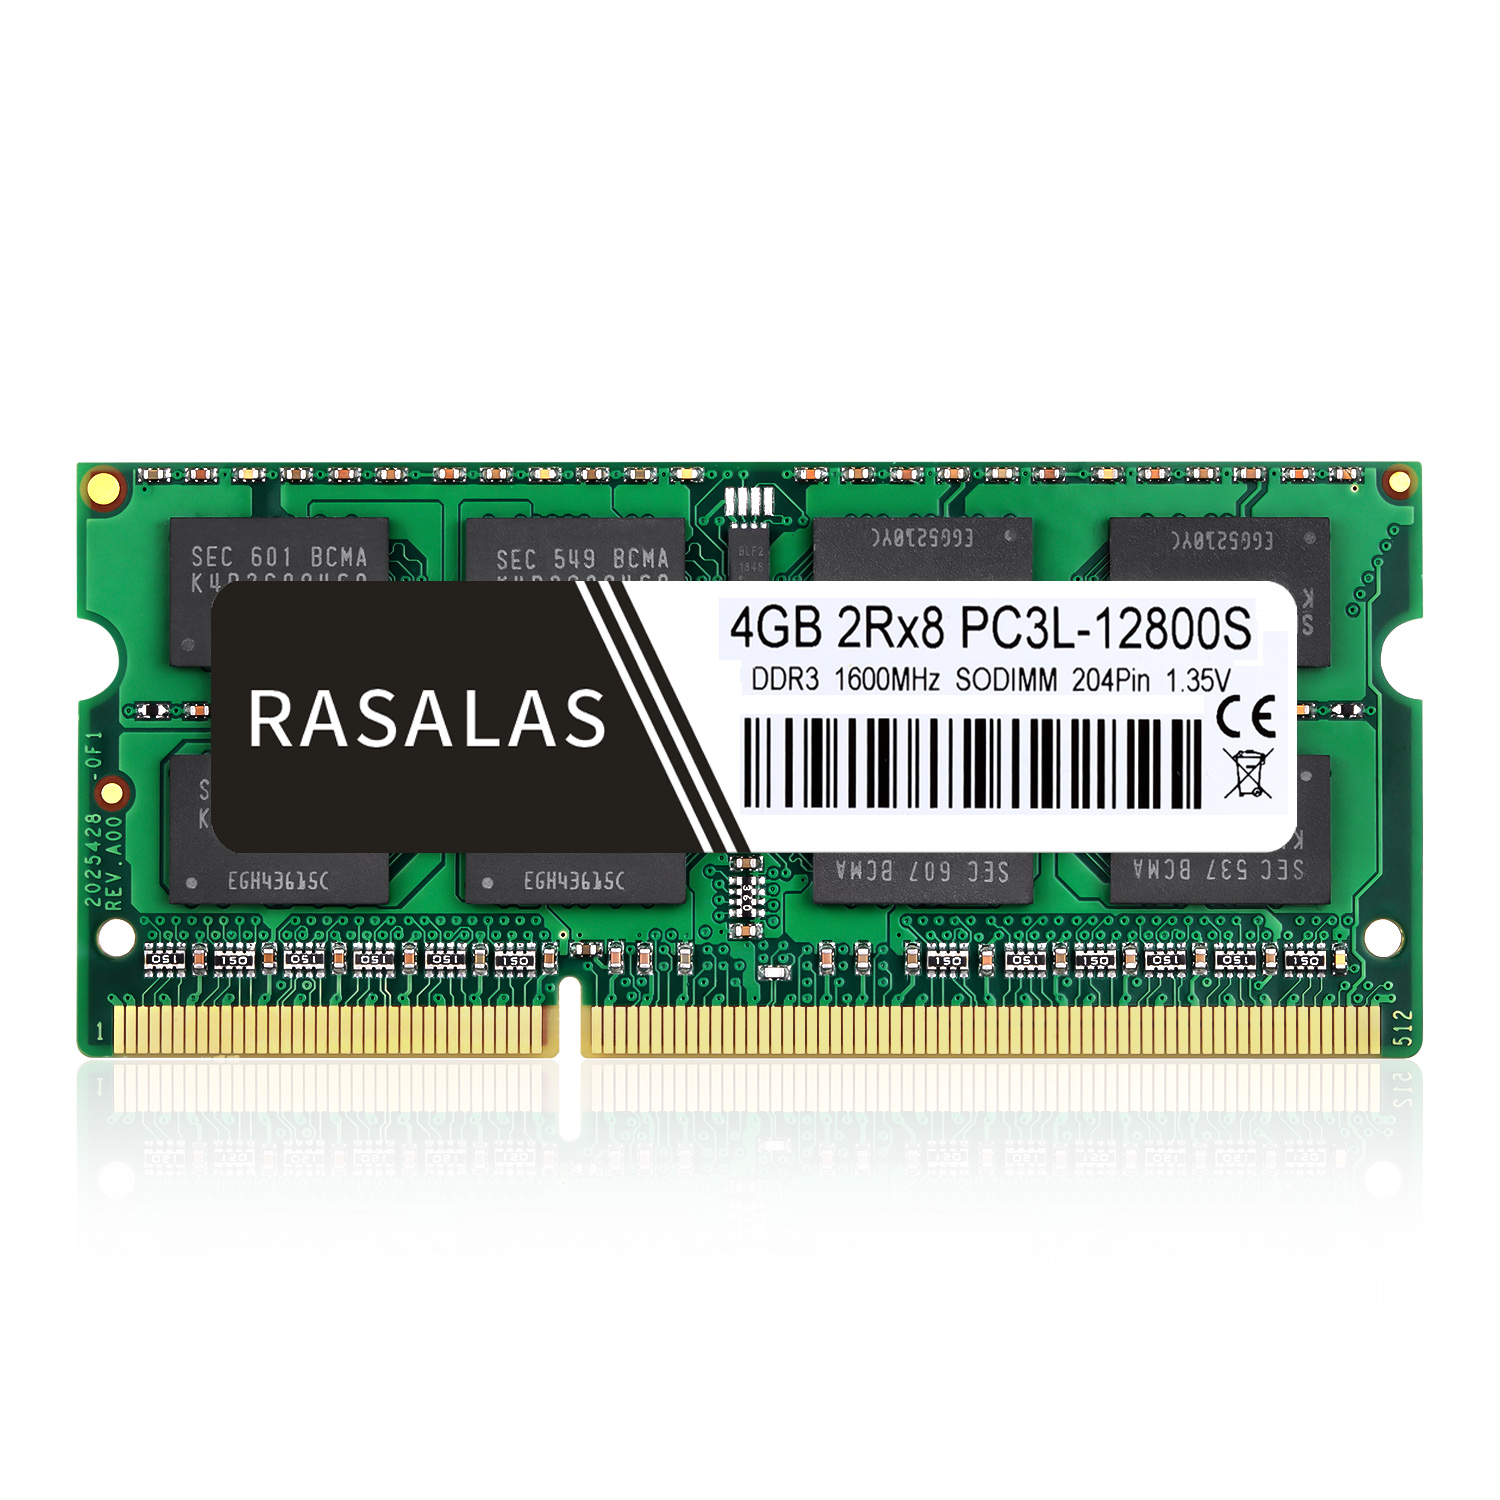 Rasalas <font><b>4GB</b></font> RAM <font><b>DDR3</b></font> 2Rx8 PC3L-12800S <font><b>DDR3</b></font> DDR3L 1600Mhz SO-DIMM 4 GB 1.35V 1,5V Notebook RAM 204Pin Laptop Memory <font><b>sodimm</b></font> NO-ECC image